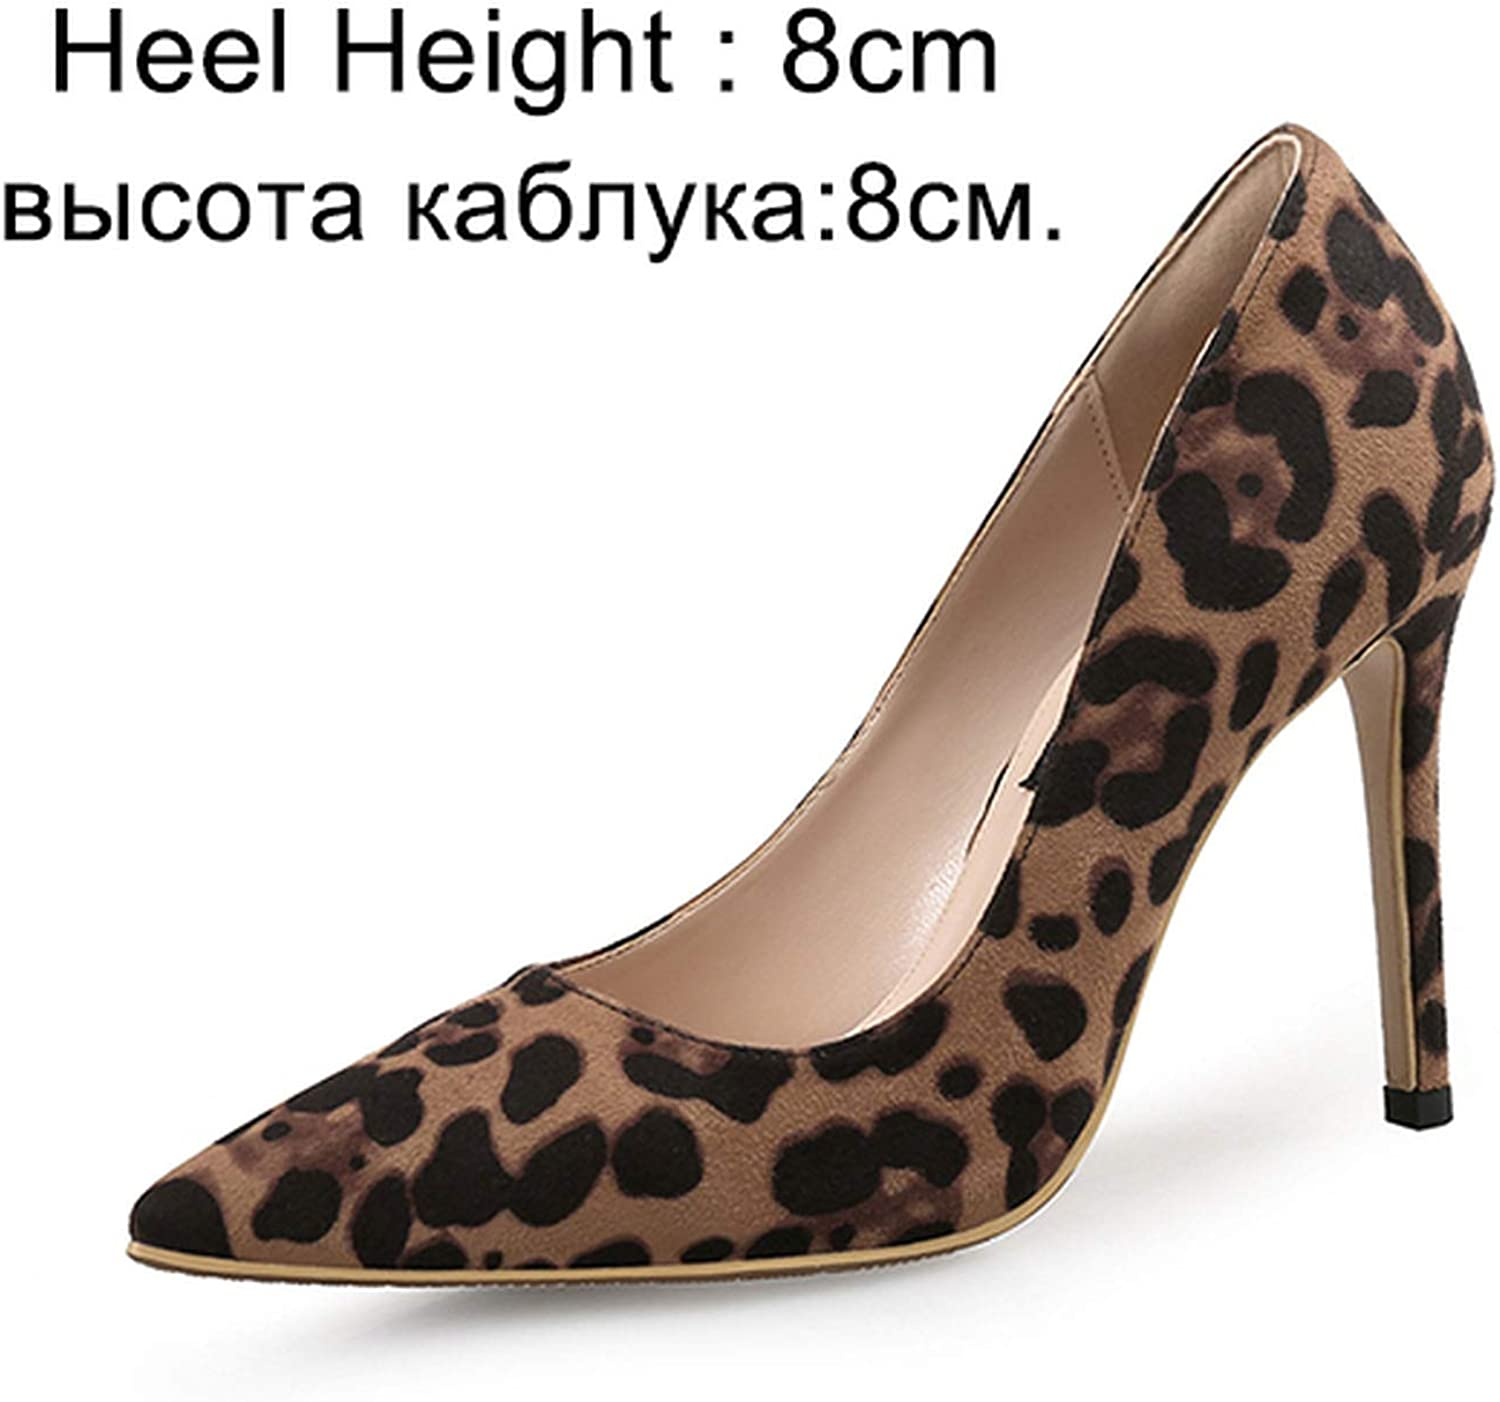 Crunchy Candy Sexy Women Pumps High Heels shoes Leopard Thin Heels shoes Pointed Toe Single Pumps